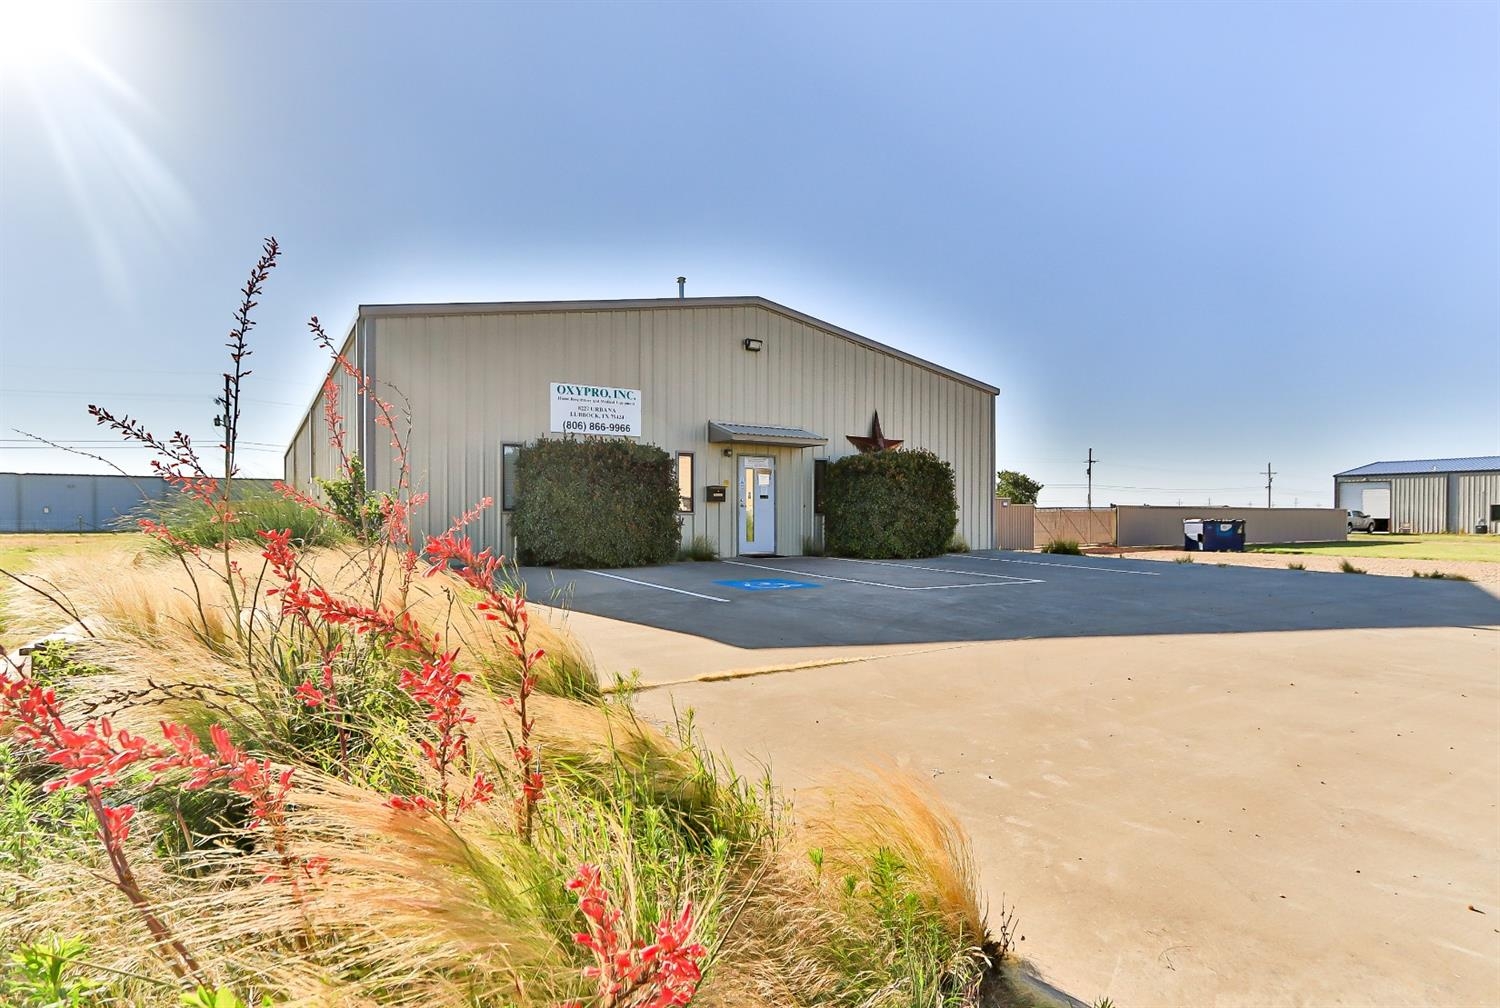 5,000 SF office/warehouse on fully fenced .934 acres for sale.  Includes 1,250 SF office and 3 separate warehouse bays.  Office includes reception, kitchen, 3 private offices, and an ADA restroom with a shower. There are three 14' overhead doors, and a 1,250 SF covered porch. Over-sized fenced lot with concrete paved parking lot. Loft decking above office and warehouses for extra storage.